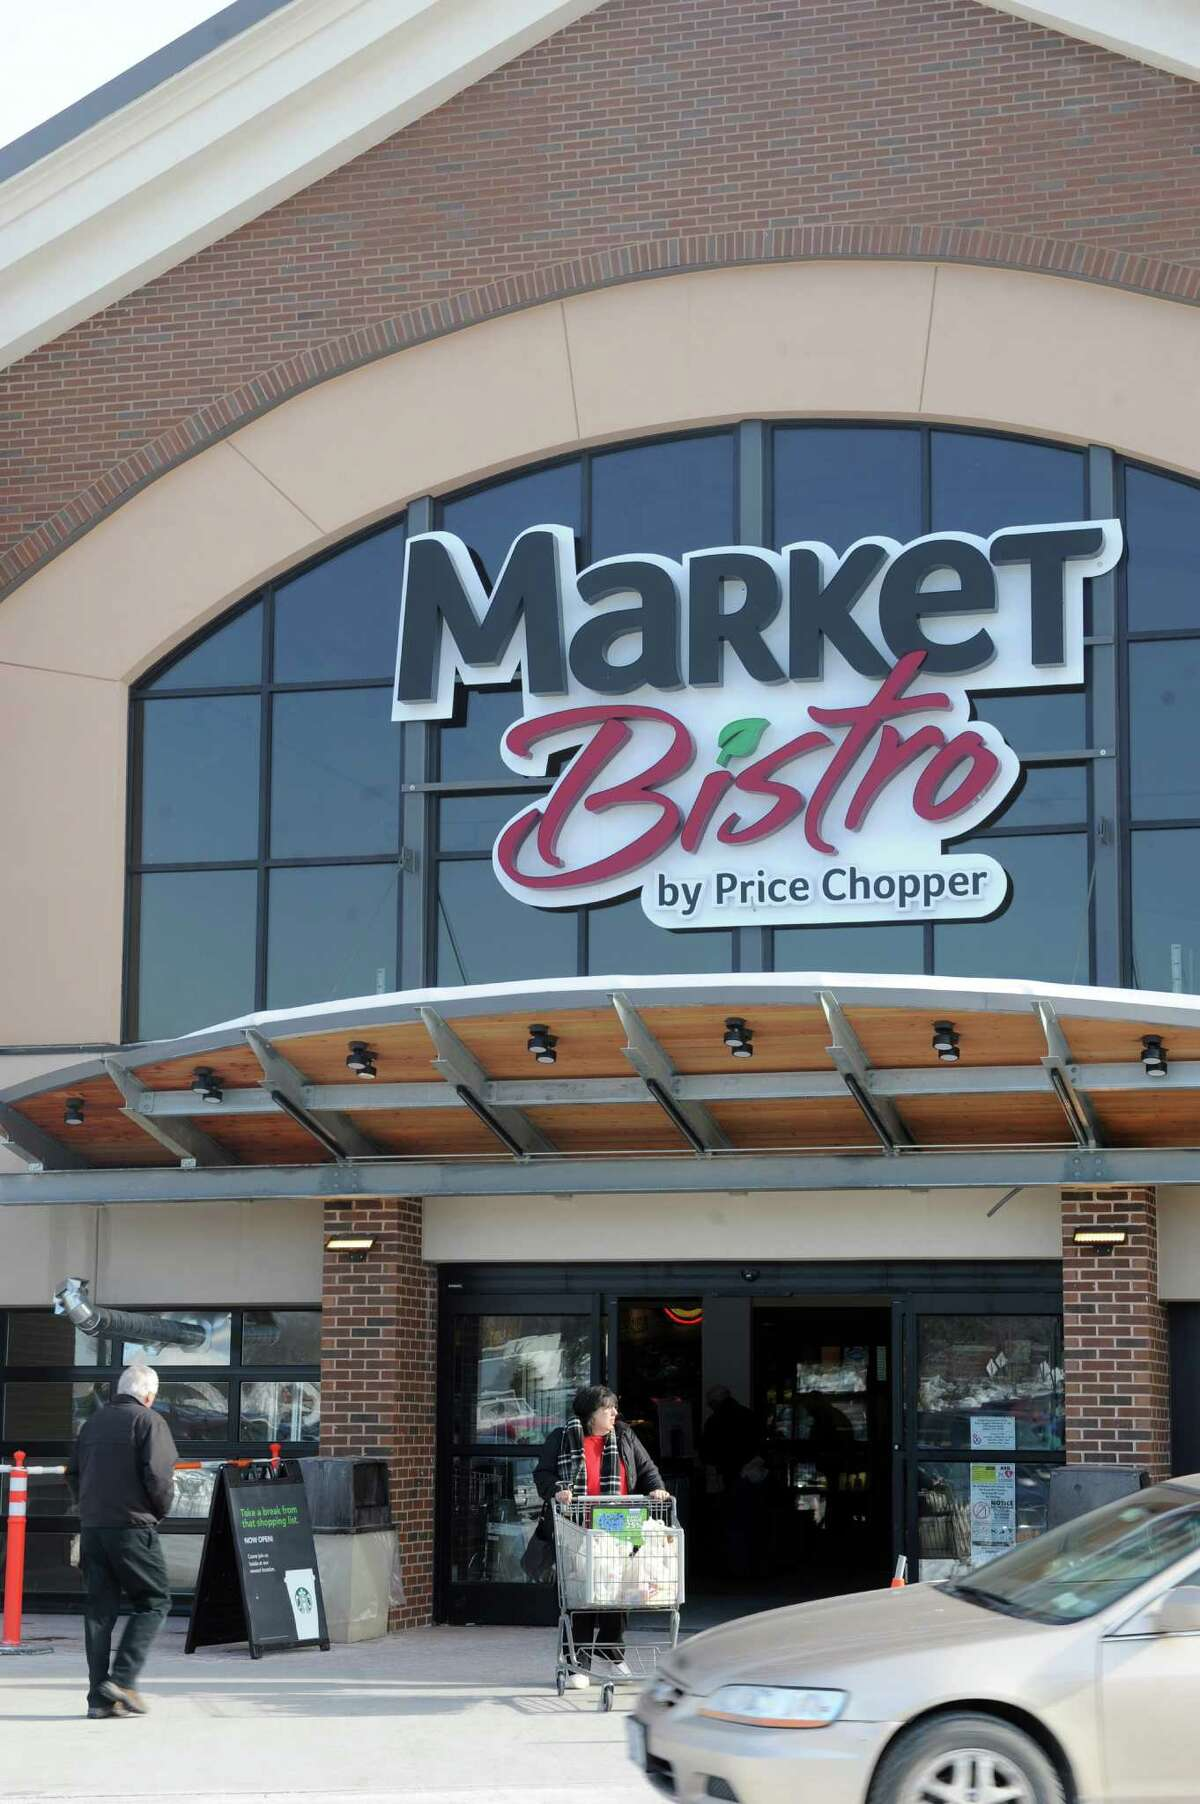 Market Bistro by Price Chopper on Wednesday Feb. 12, 2014 in Latham, N.Y. (Michael P. Farrell/Times Union)